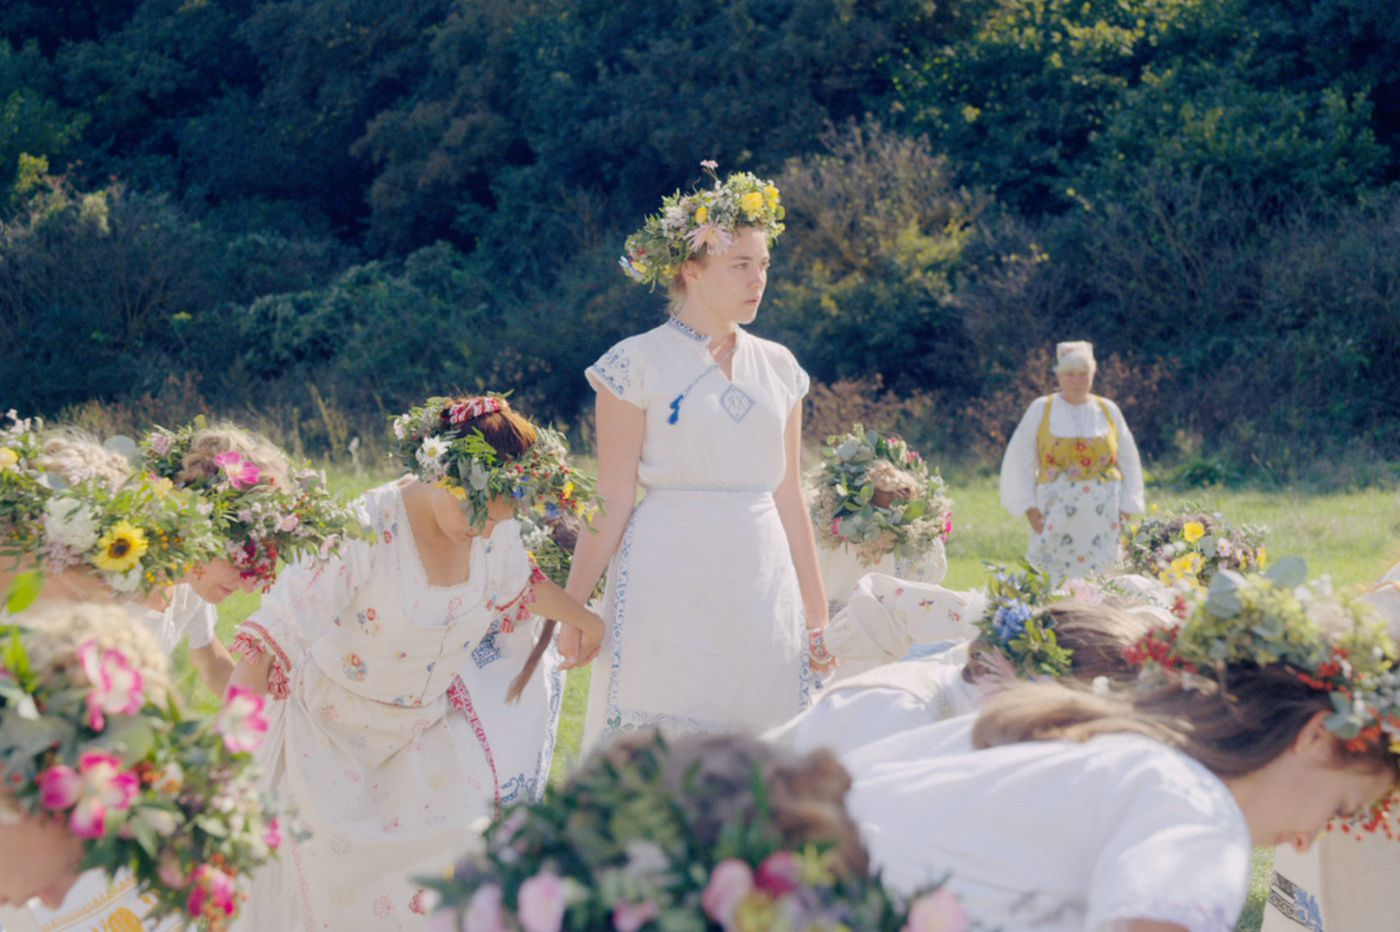 'Midsommar': 'Hereditary' director returns for some sunny-side up horror